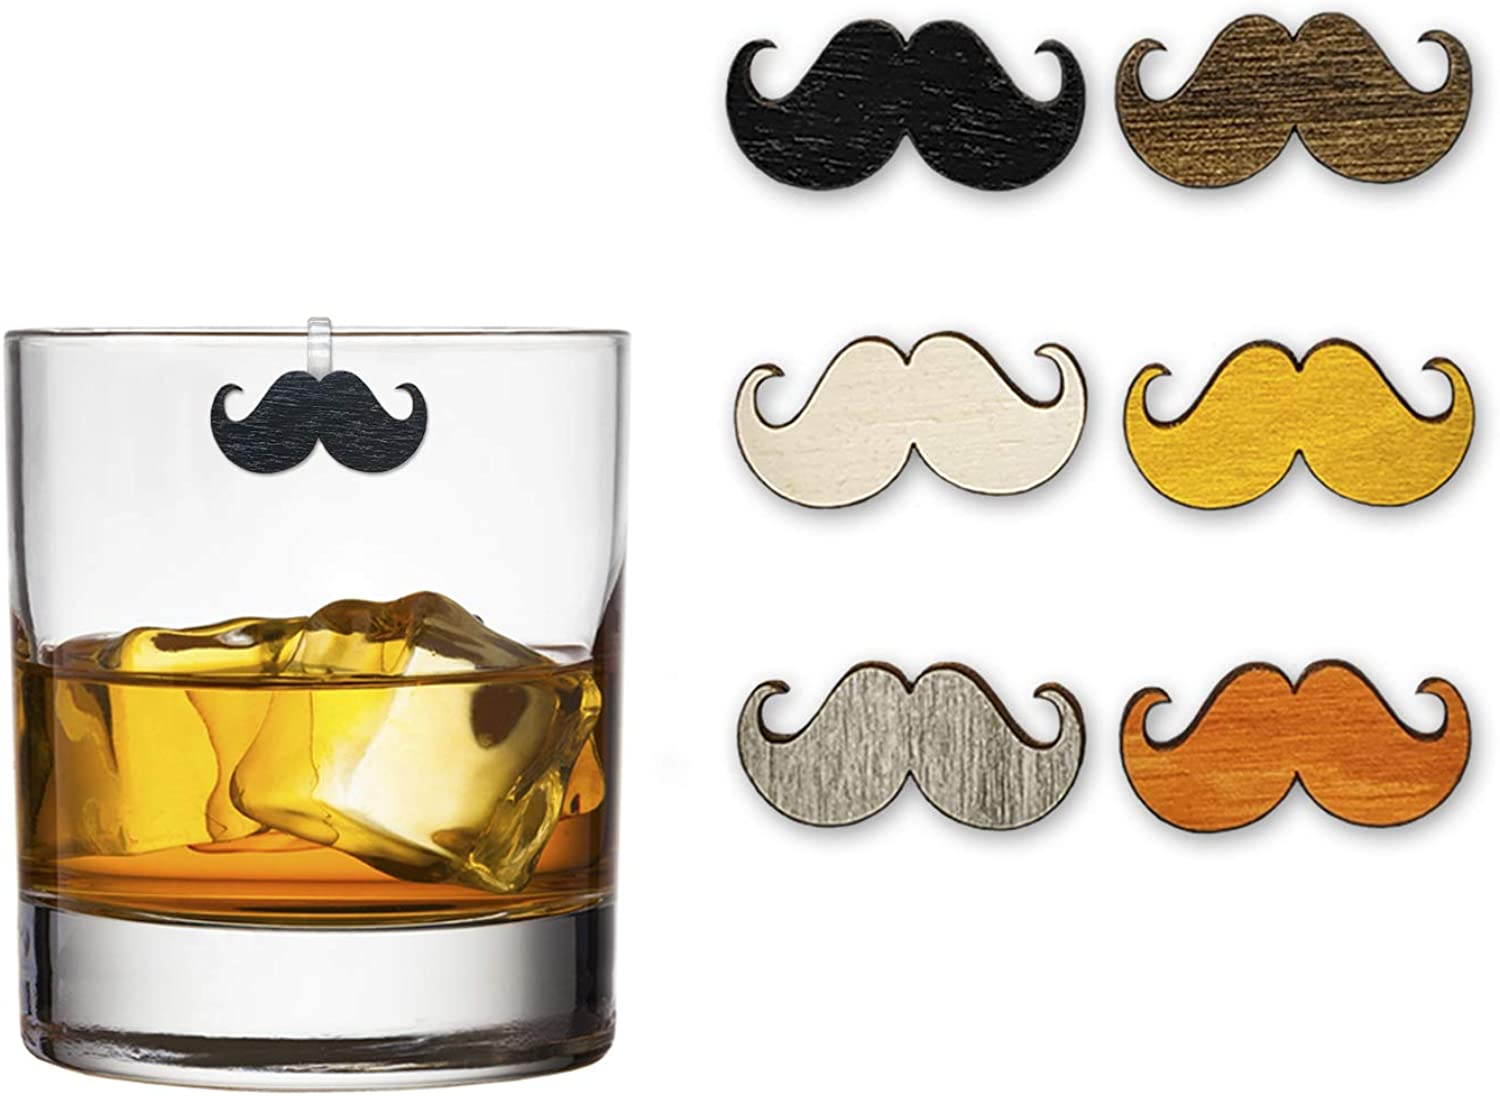 Curly Mustache Wine Charms / Drink Markers - Set of 6 - Wine Glass Clips by Claim Your Glass C.Y.G. - Storage travel pouch Included